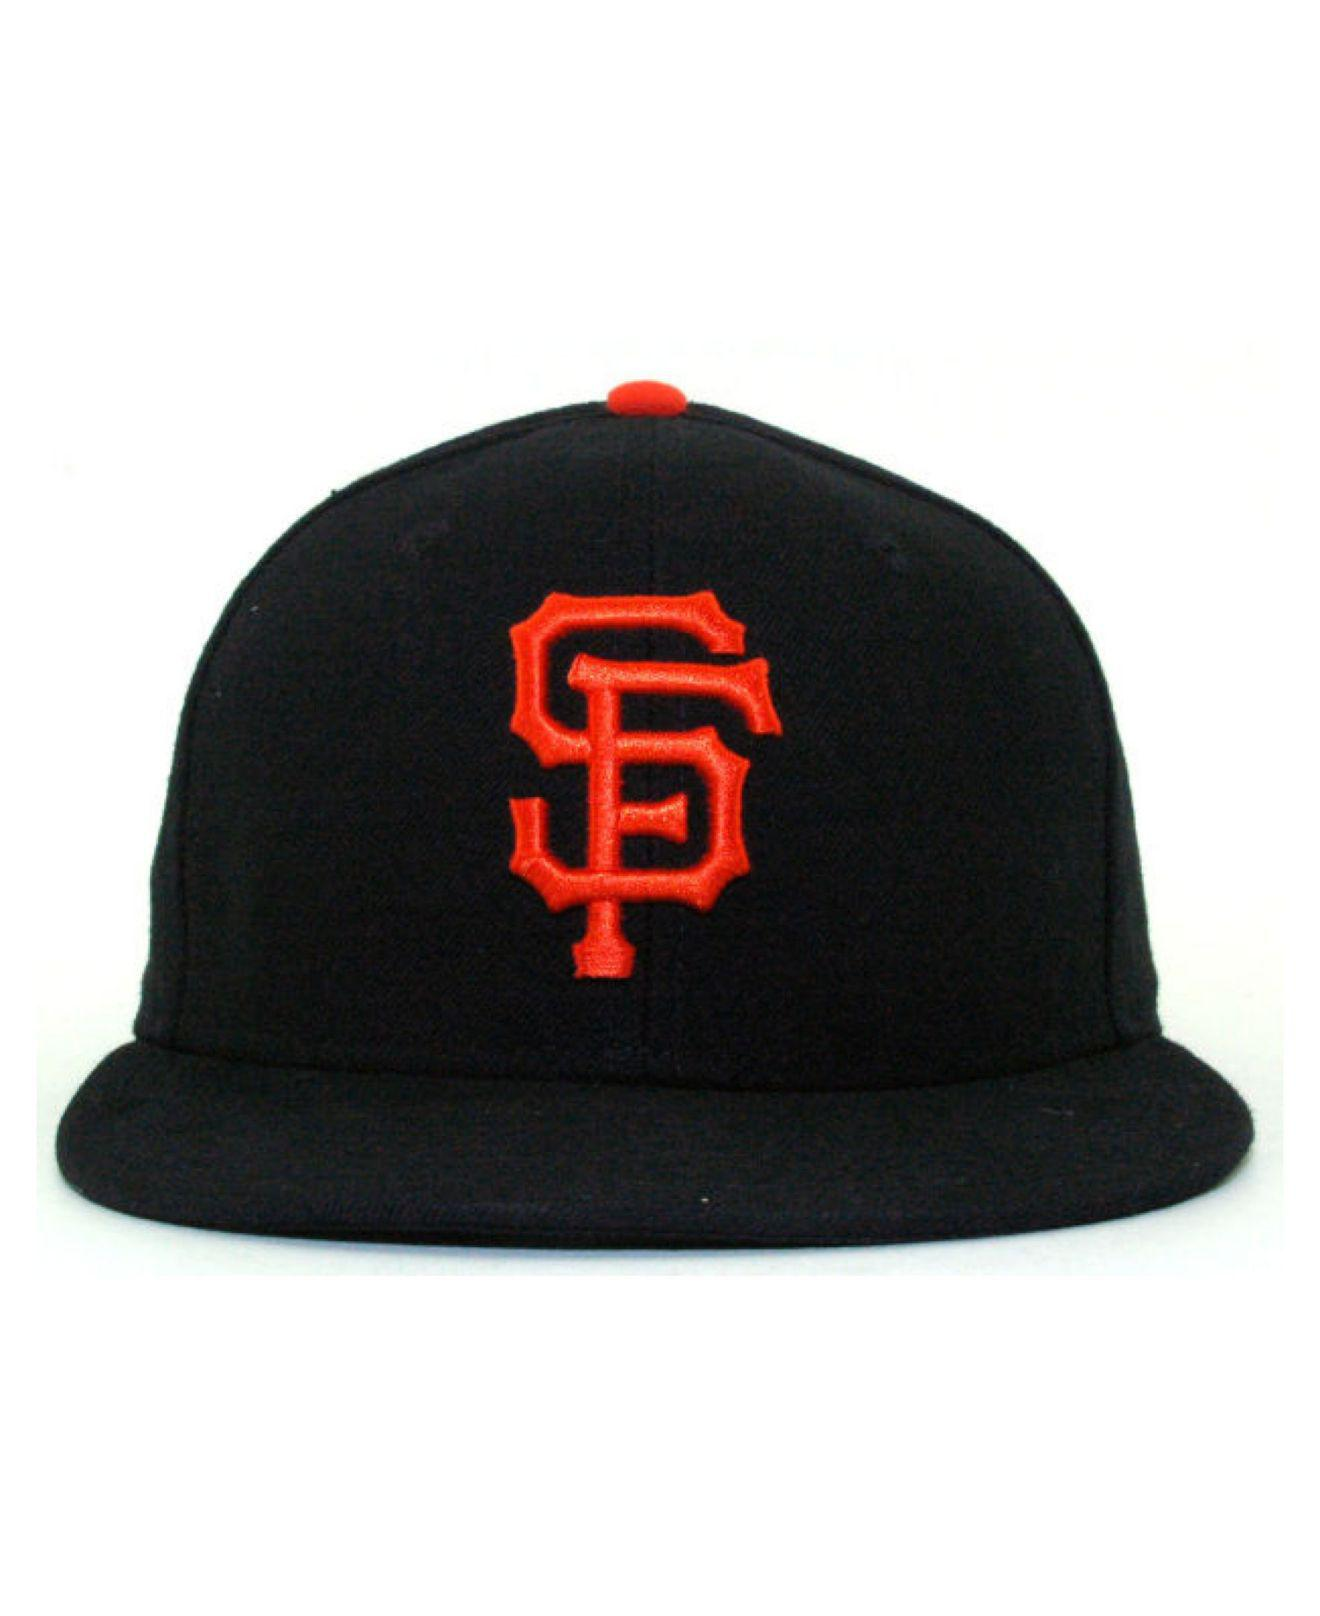 the best attitude 8e5b8 66cae Lyst - KTZ San Francisco Giants Mlb Authentic Collection 59fifty Cap in  Black for Men